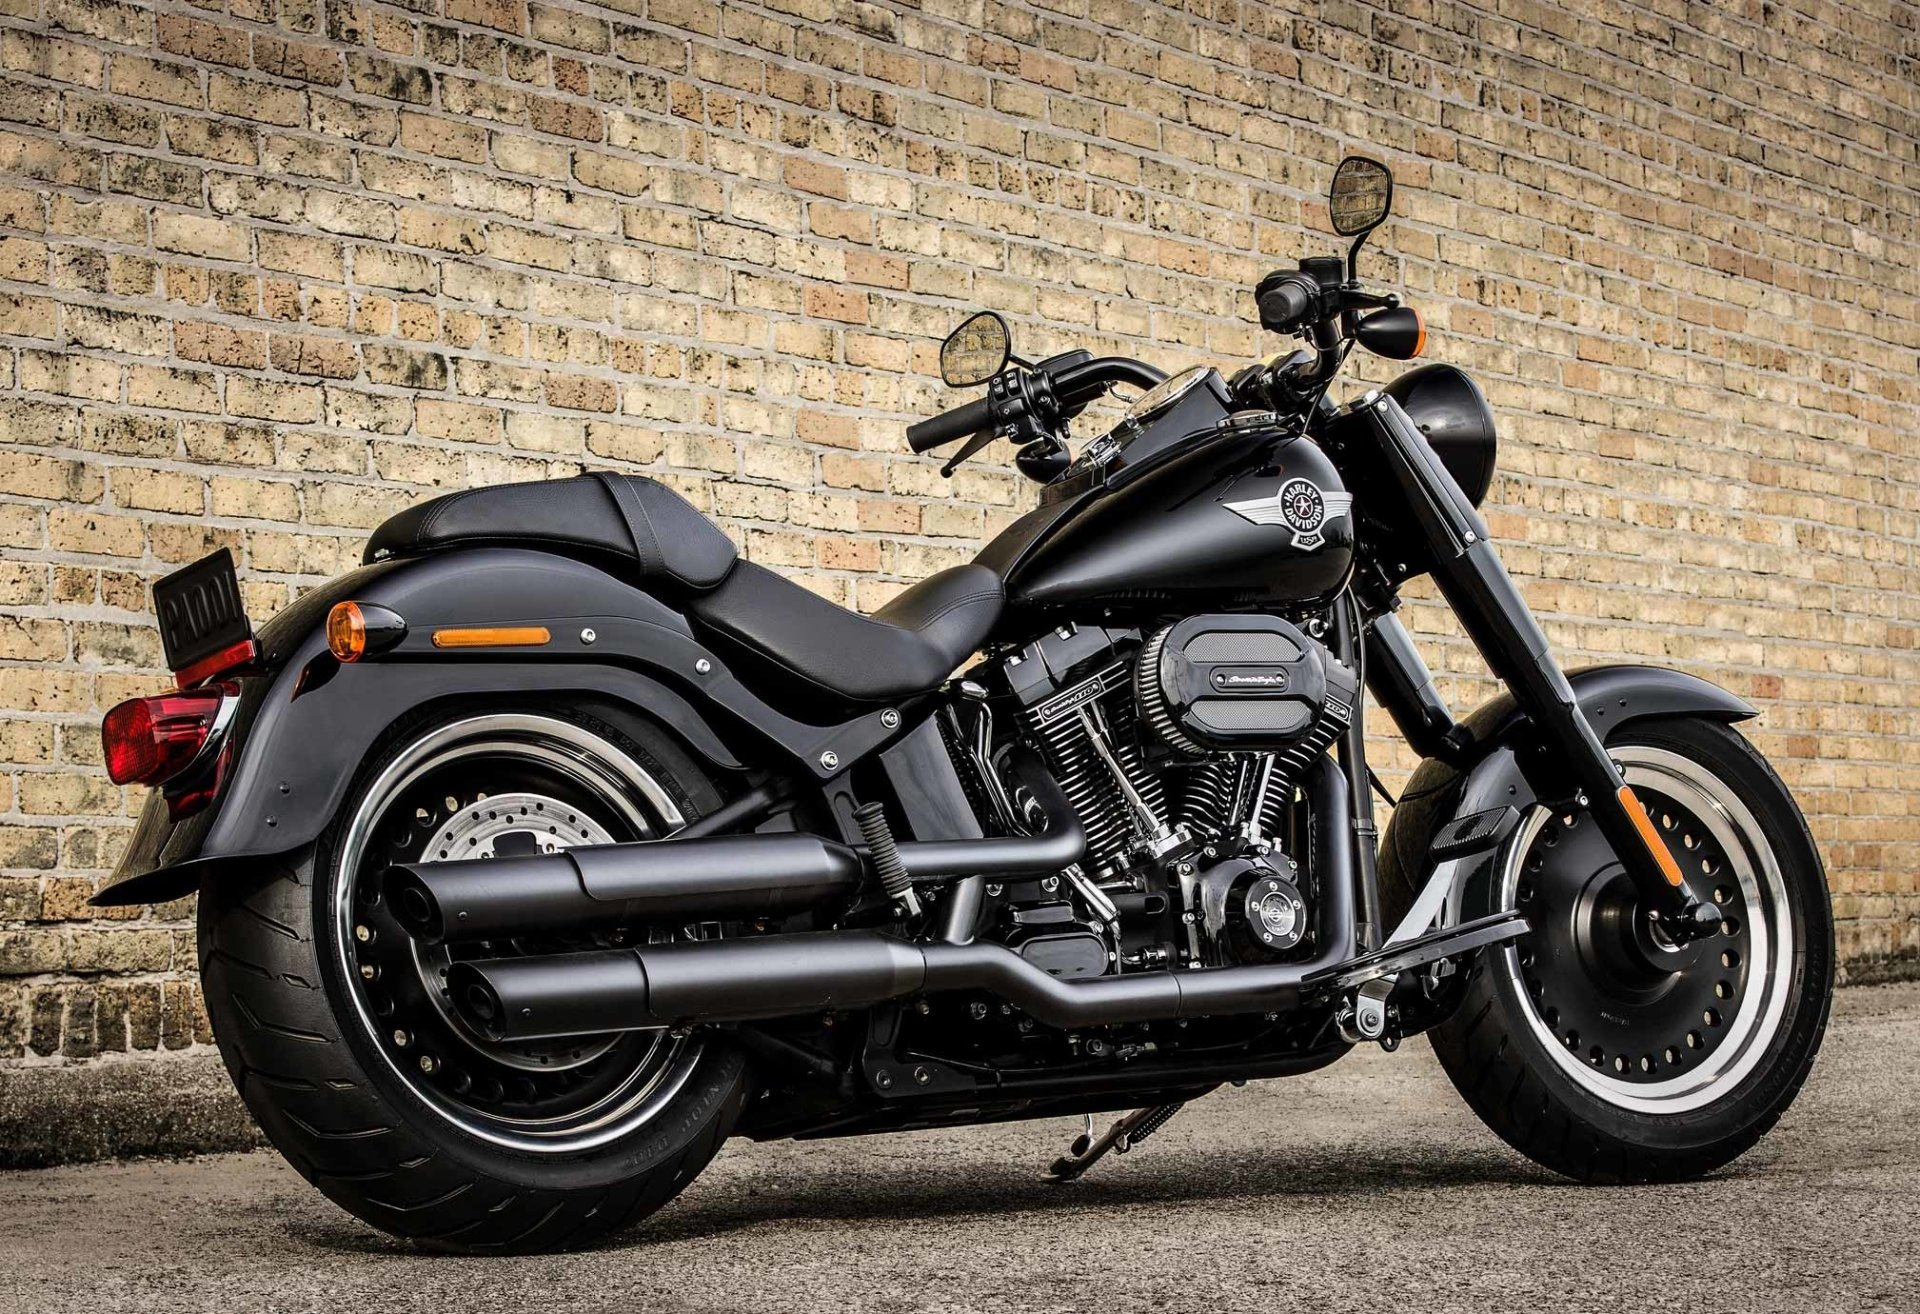 10 Harley Davidson Fat Boy Hd Wallpapers Background Images Wallpaper Abyss